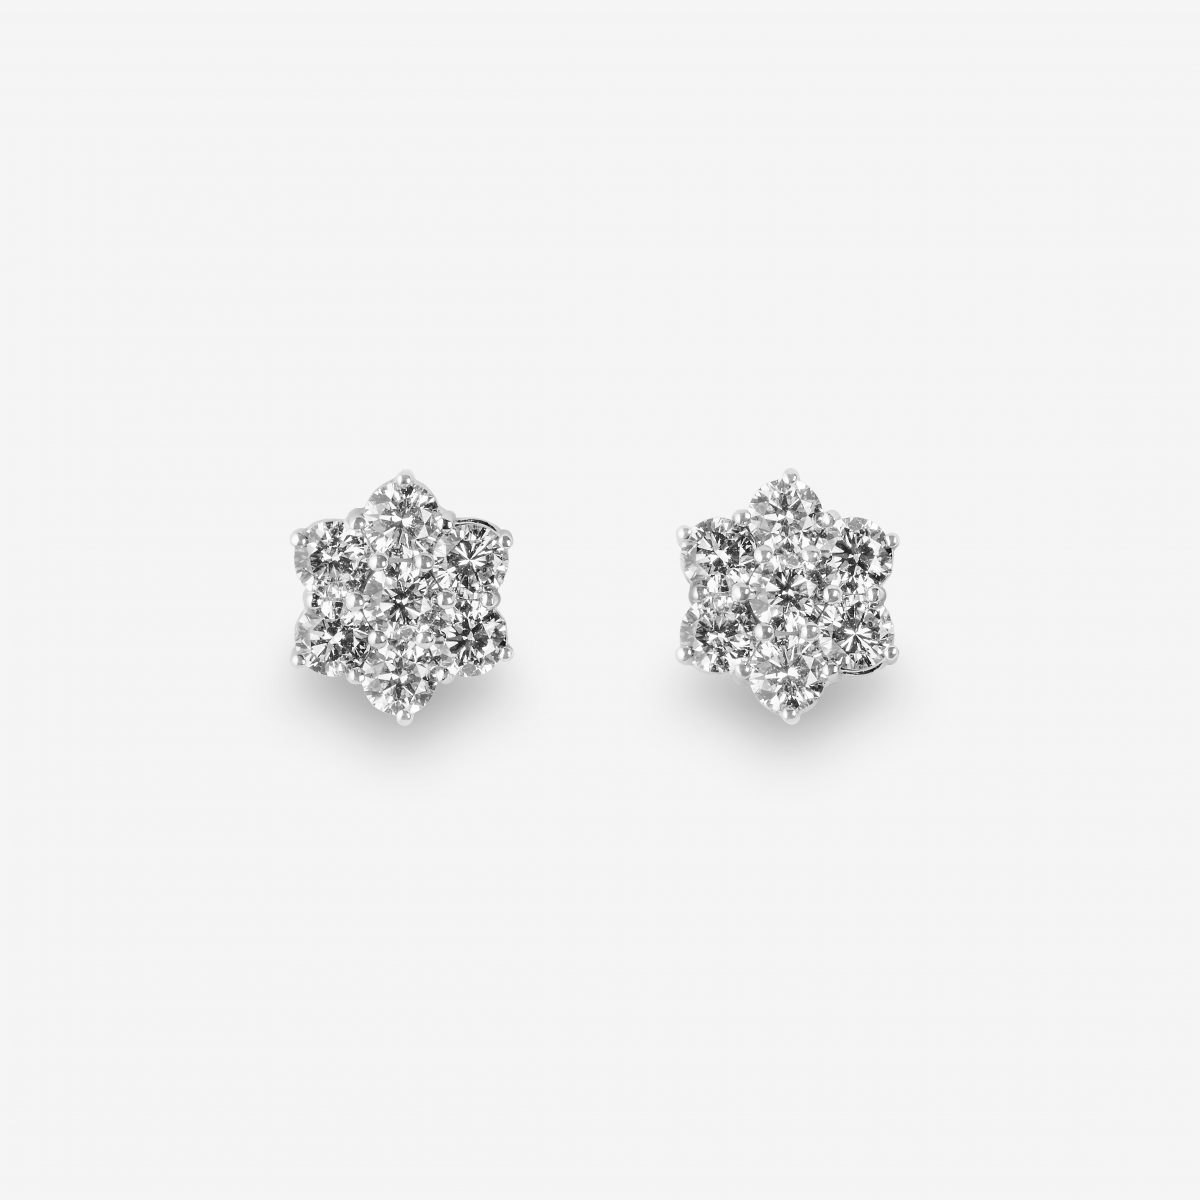 Pendientes oro blanco y brillantes, 2,62 quilates.